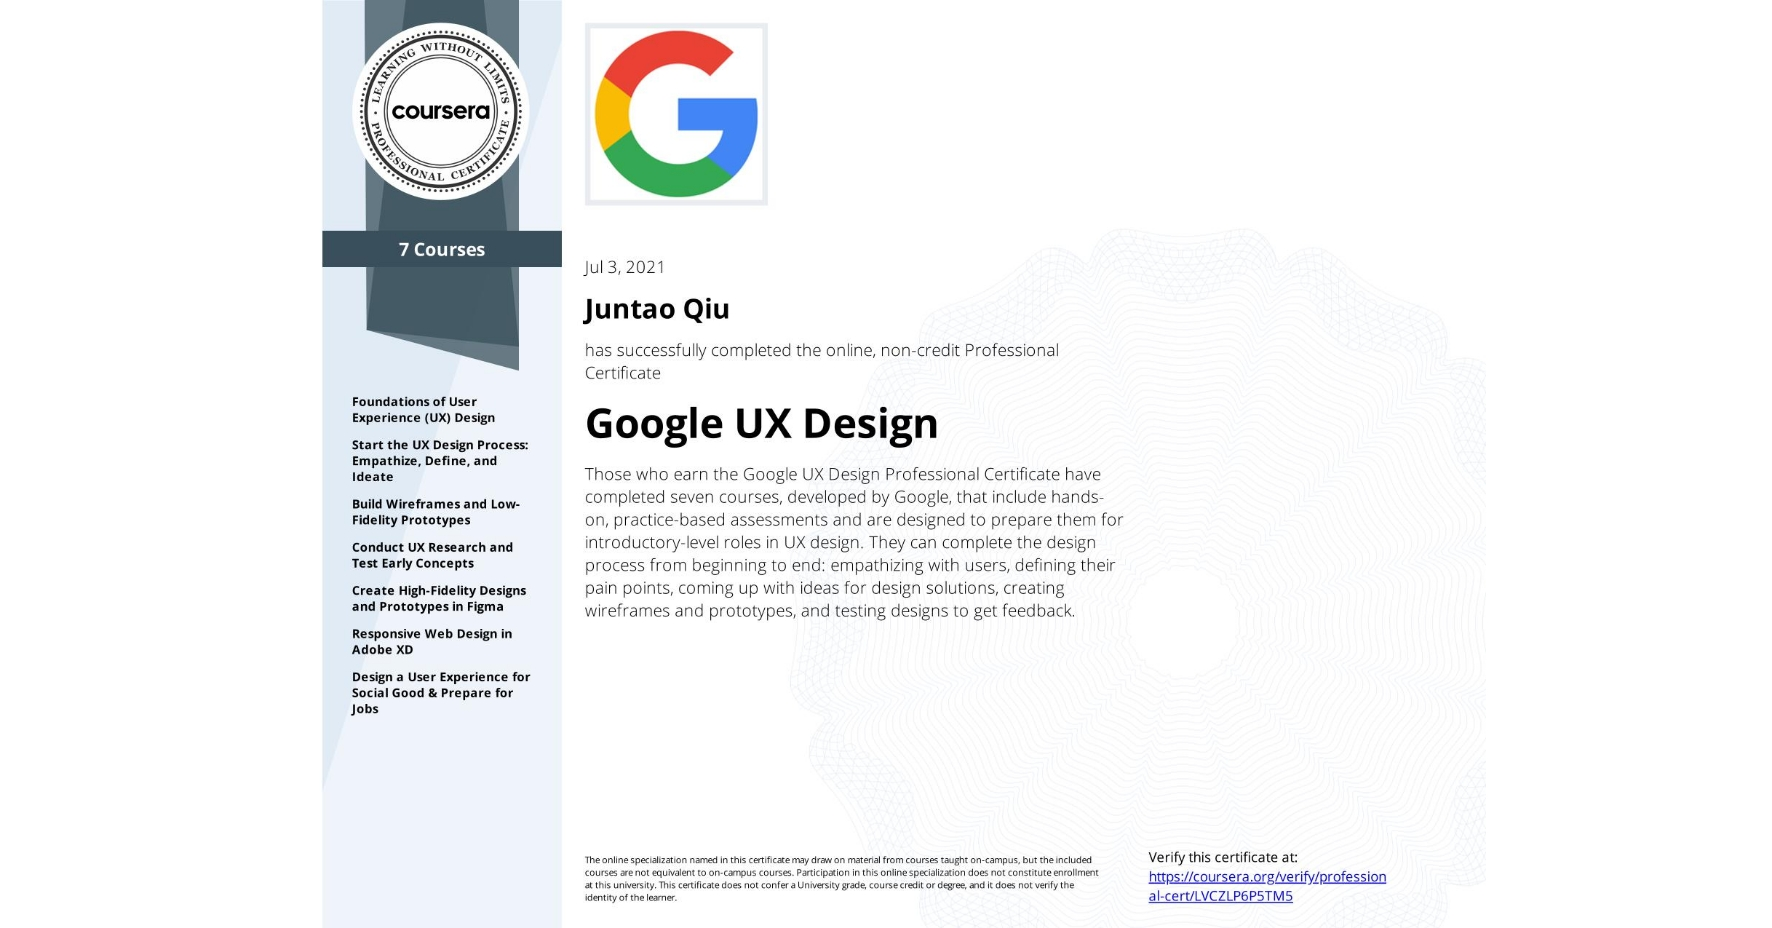 View certificate for Juntao Qiu, Google UX Design, offered through Coursera. Those who earn the Google UX Design Professional Certificate have completed seven courses, developed by Google, that include hands-on, practice-based assessments and are designed to prepare them for introductory-level roles in UX design. They can complete the design process from beginning to end: empathizing with users, defining their pain points, coming up with ideas for design solutions, creating wireframes and prototypes, and testing designs to get feedback.